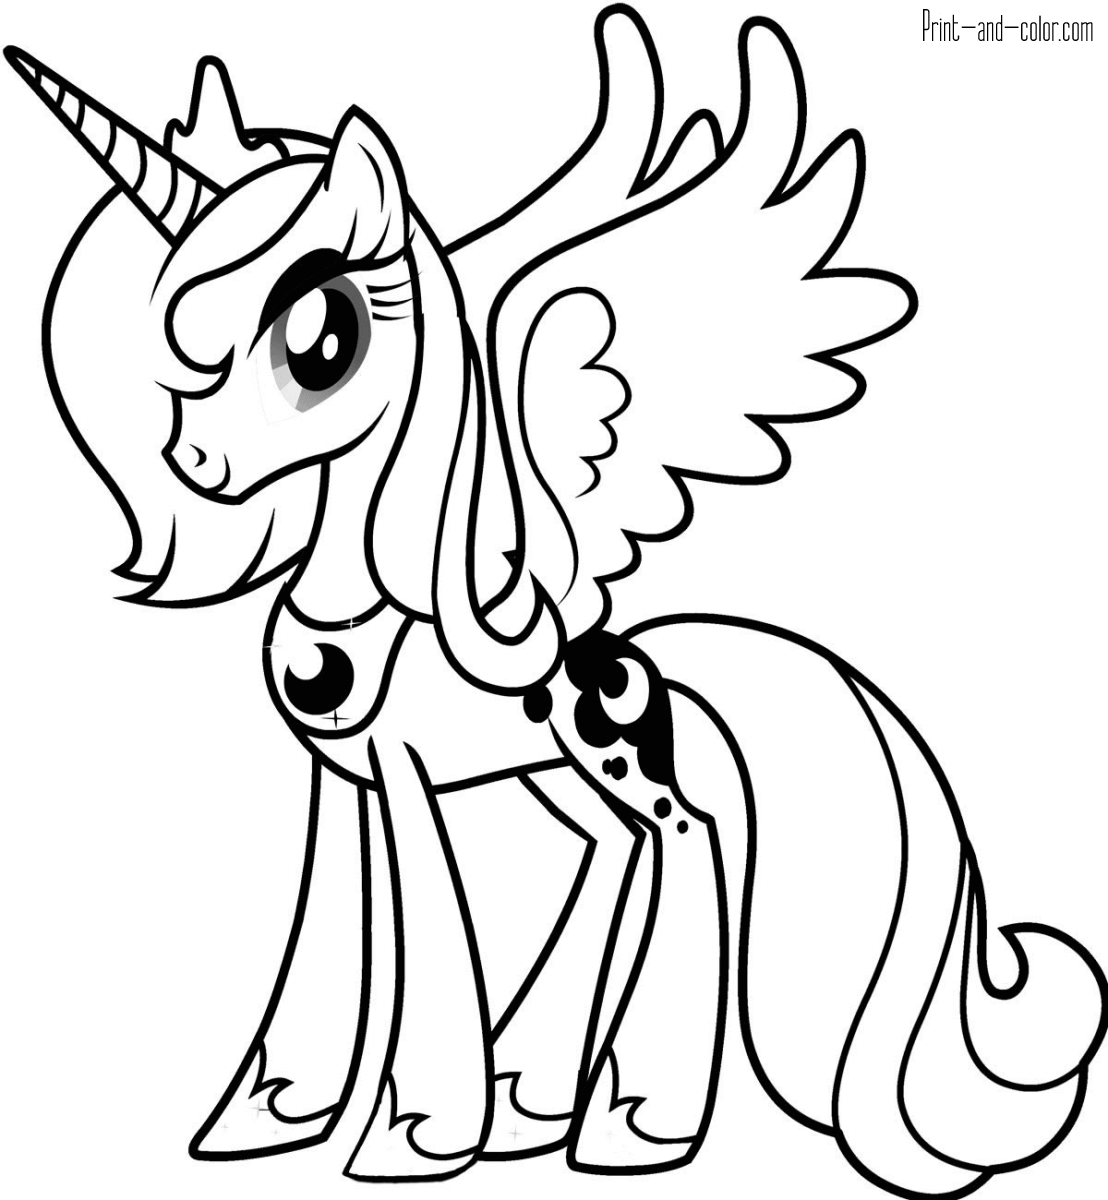 my little pony coloring images free printable my little pony coloring pages for kids little images pony my coloring